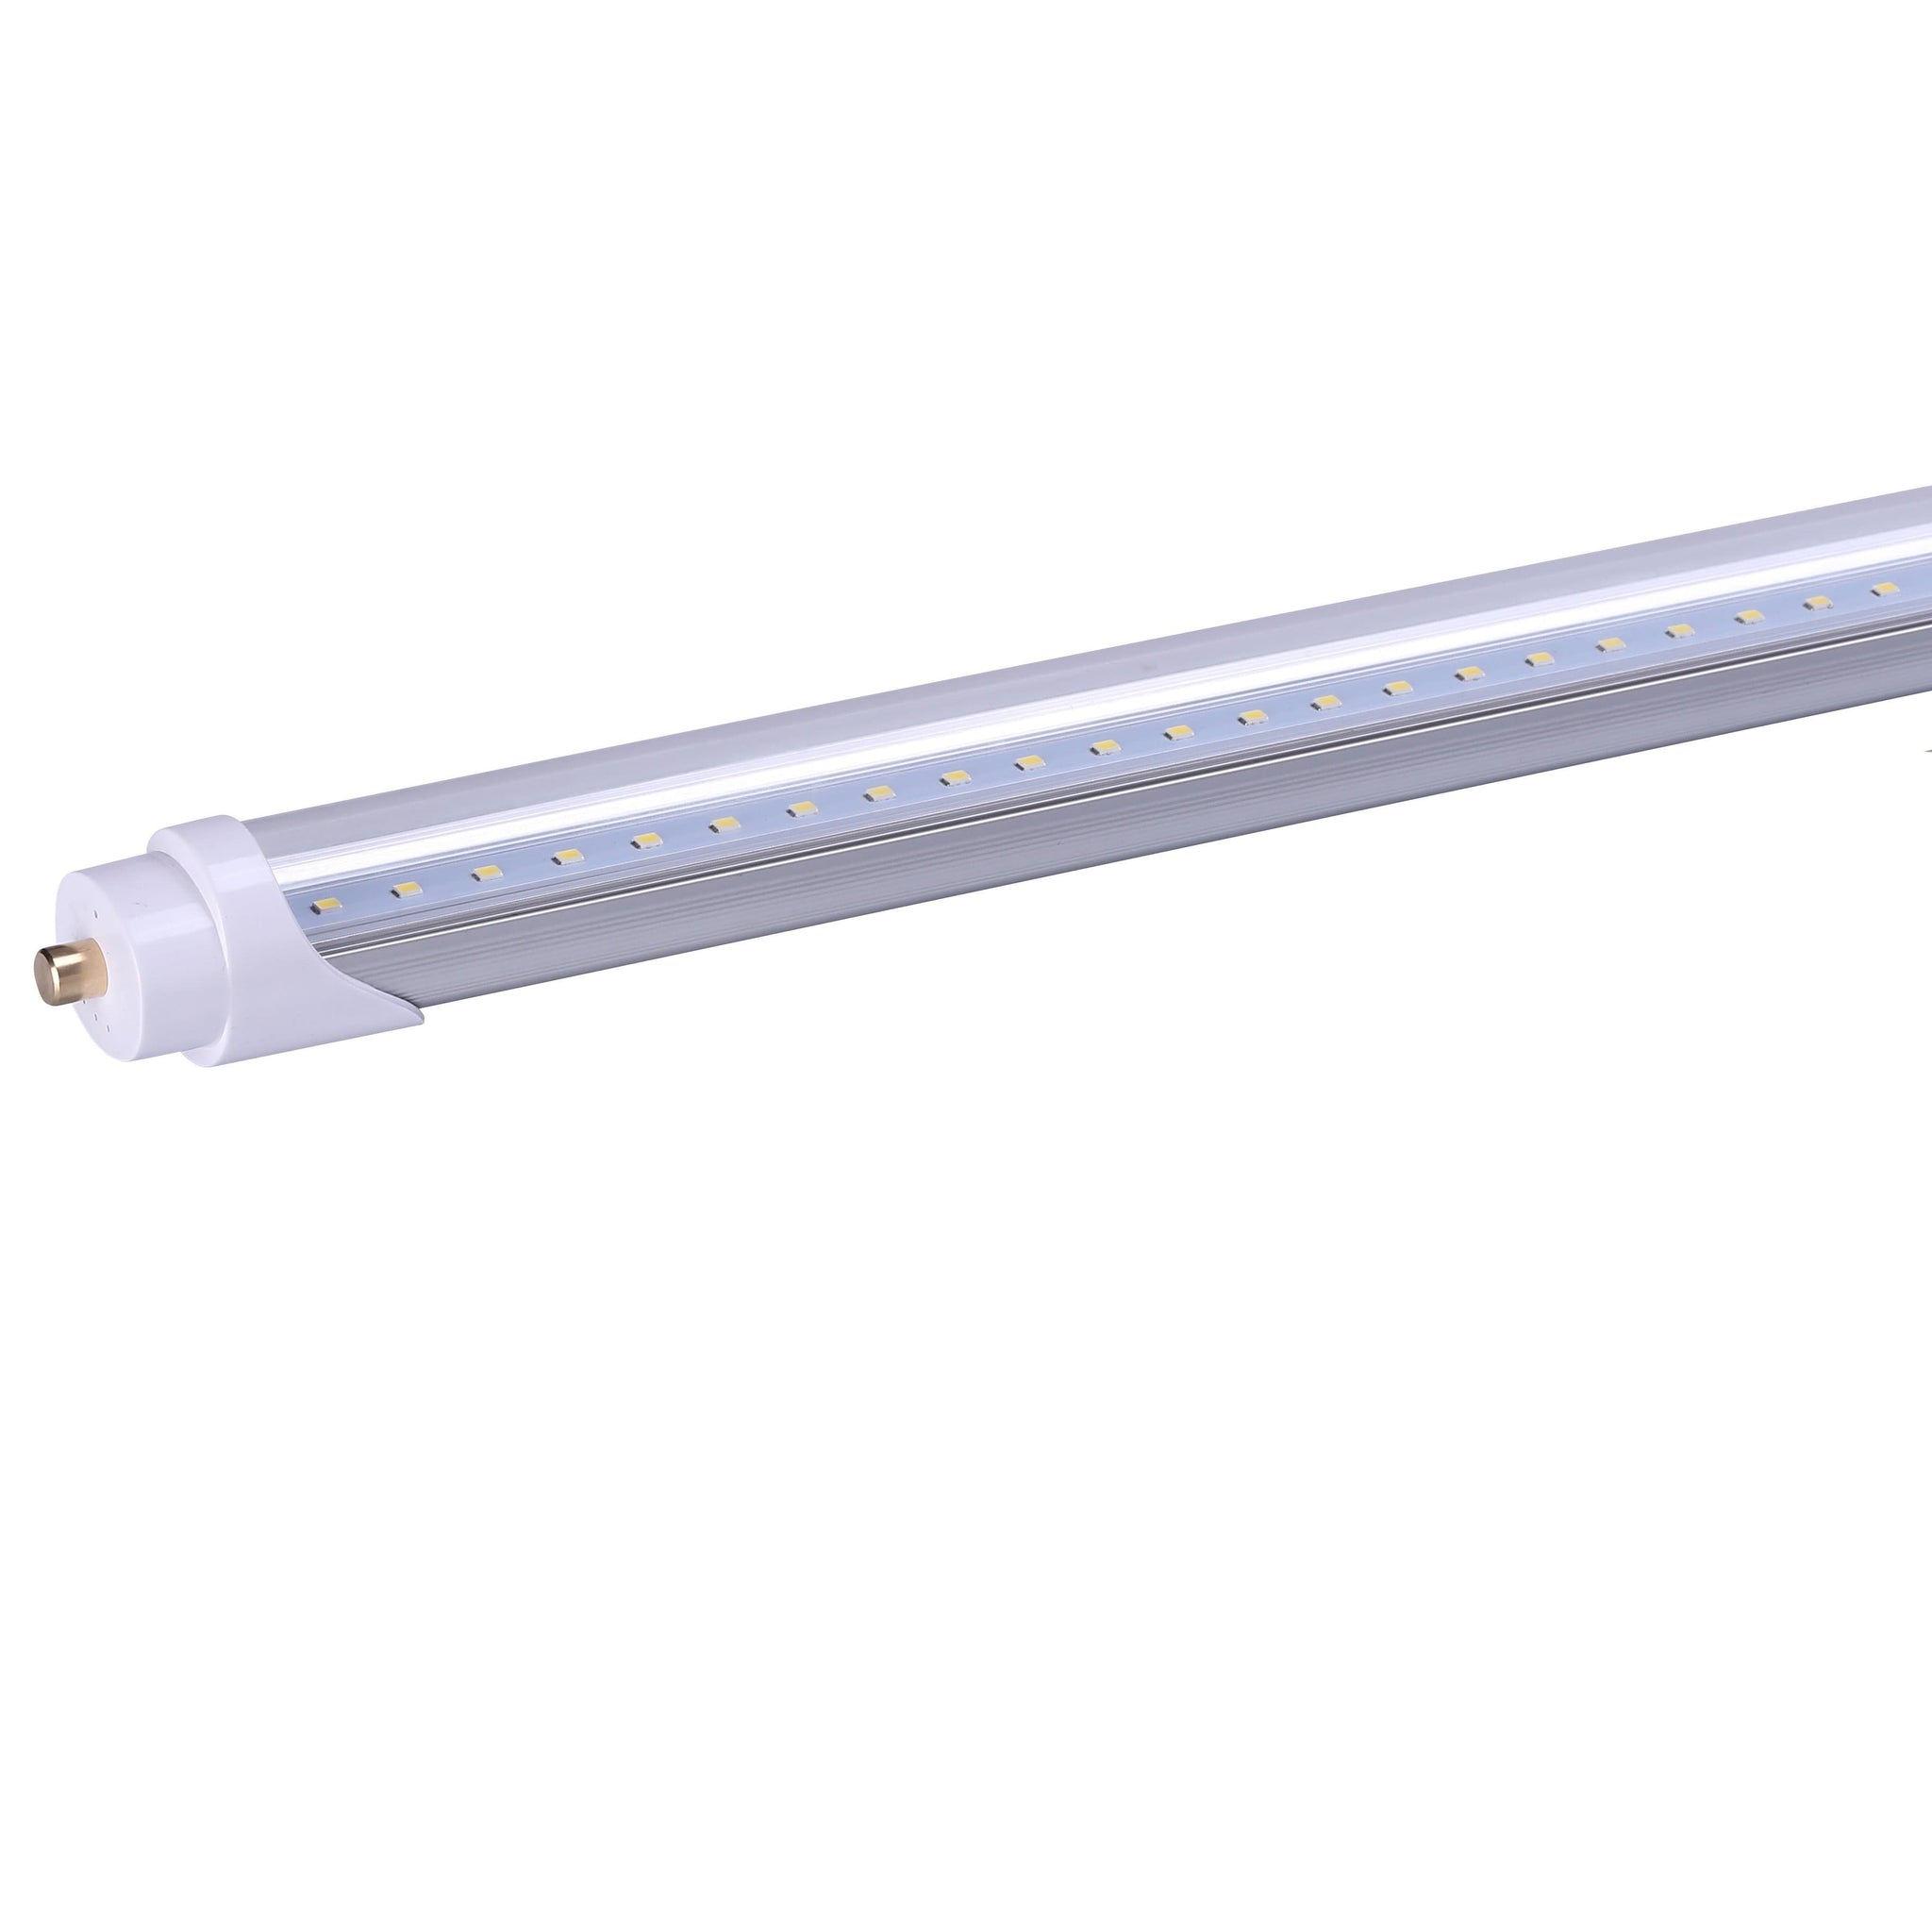 Direct Wire LED Tube 8FT 36W Single Pin-25PCS/CTN